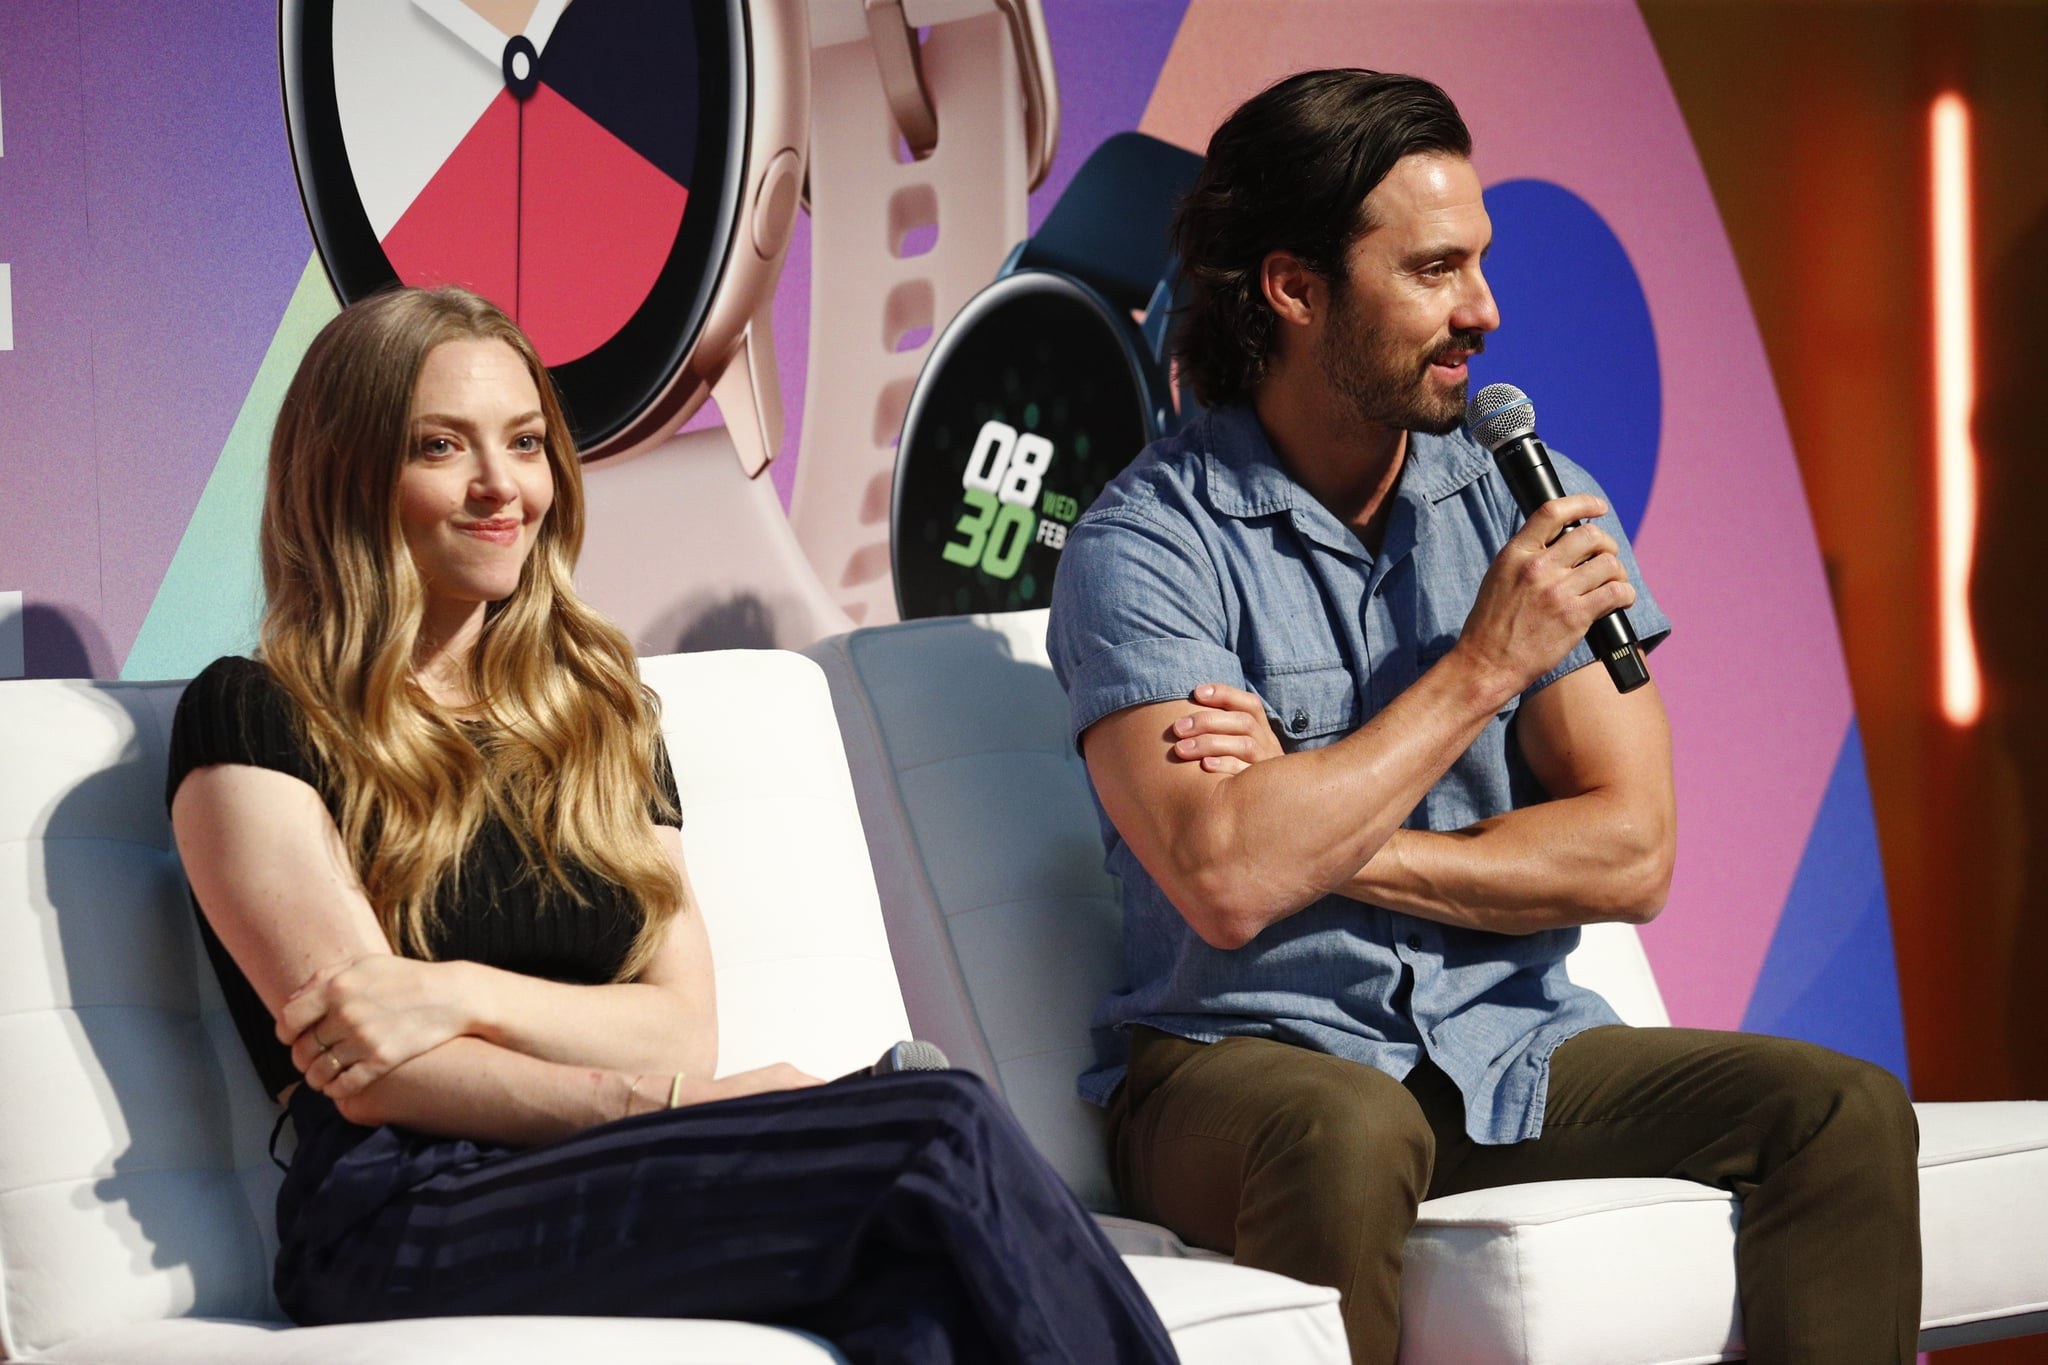 NEW YORK, NEW YORK - JUNE 22: Milo Ventimiglia and Amanda Seyfried  speak on stage during the POPSUGAR Play/ground at Pier 94 on June 22, 2019 in New York City. (Photo by Astrid Stawiarz/Getty Images for POPSUGAR and Reed Exhibitions )